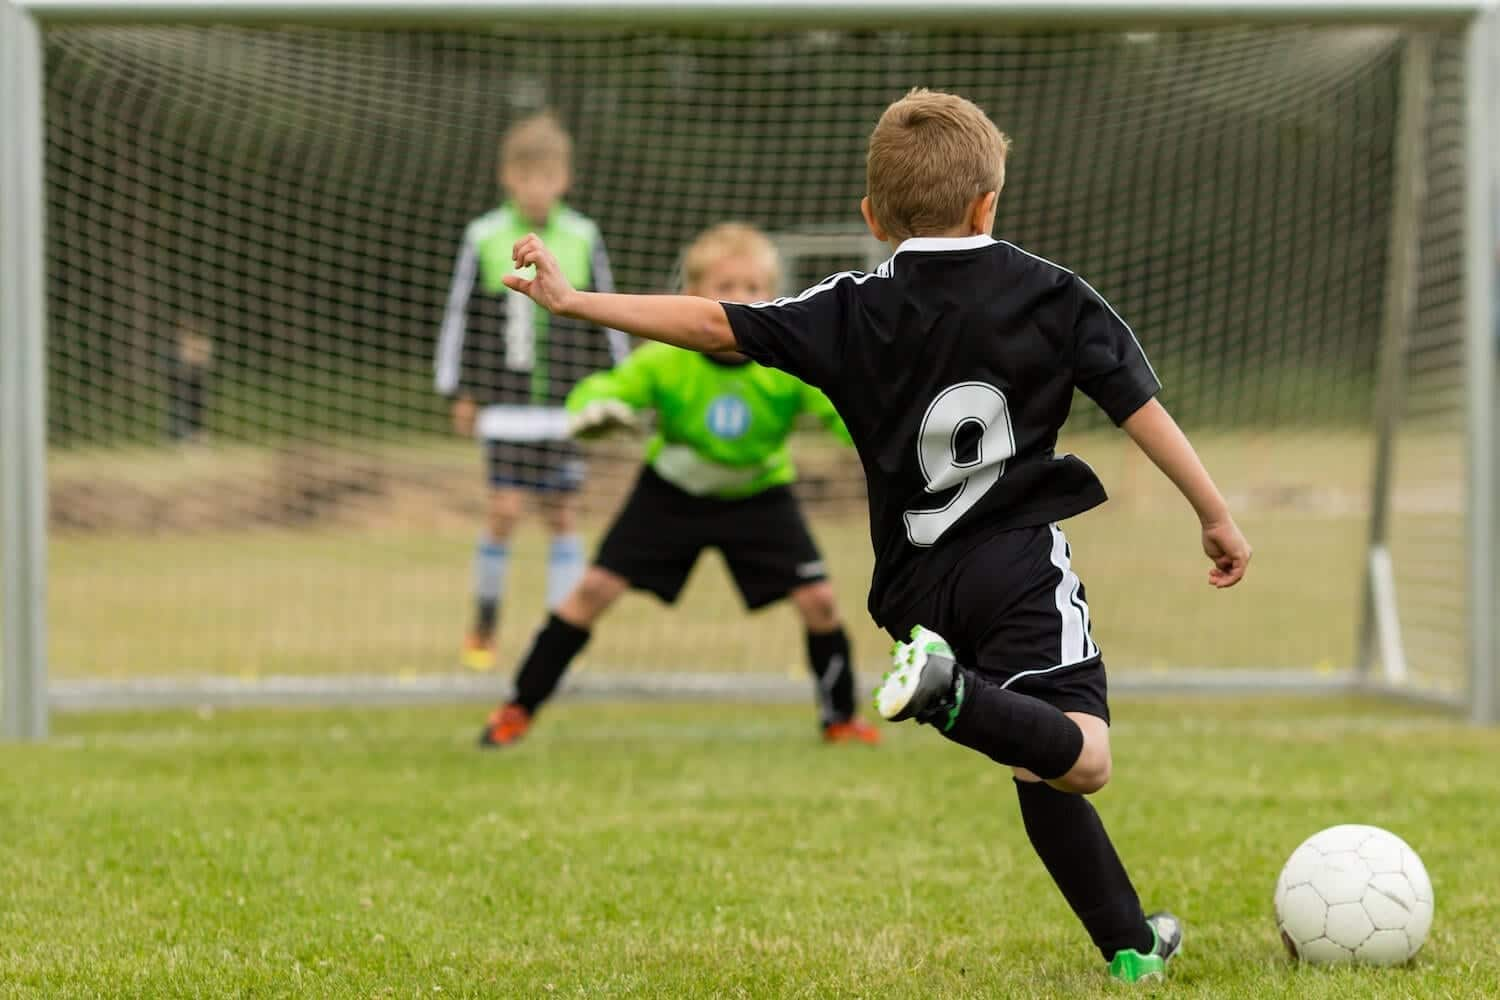 5 Things You Can Tell About a Town by the Soccer Sidelines